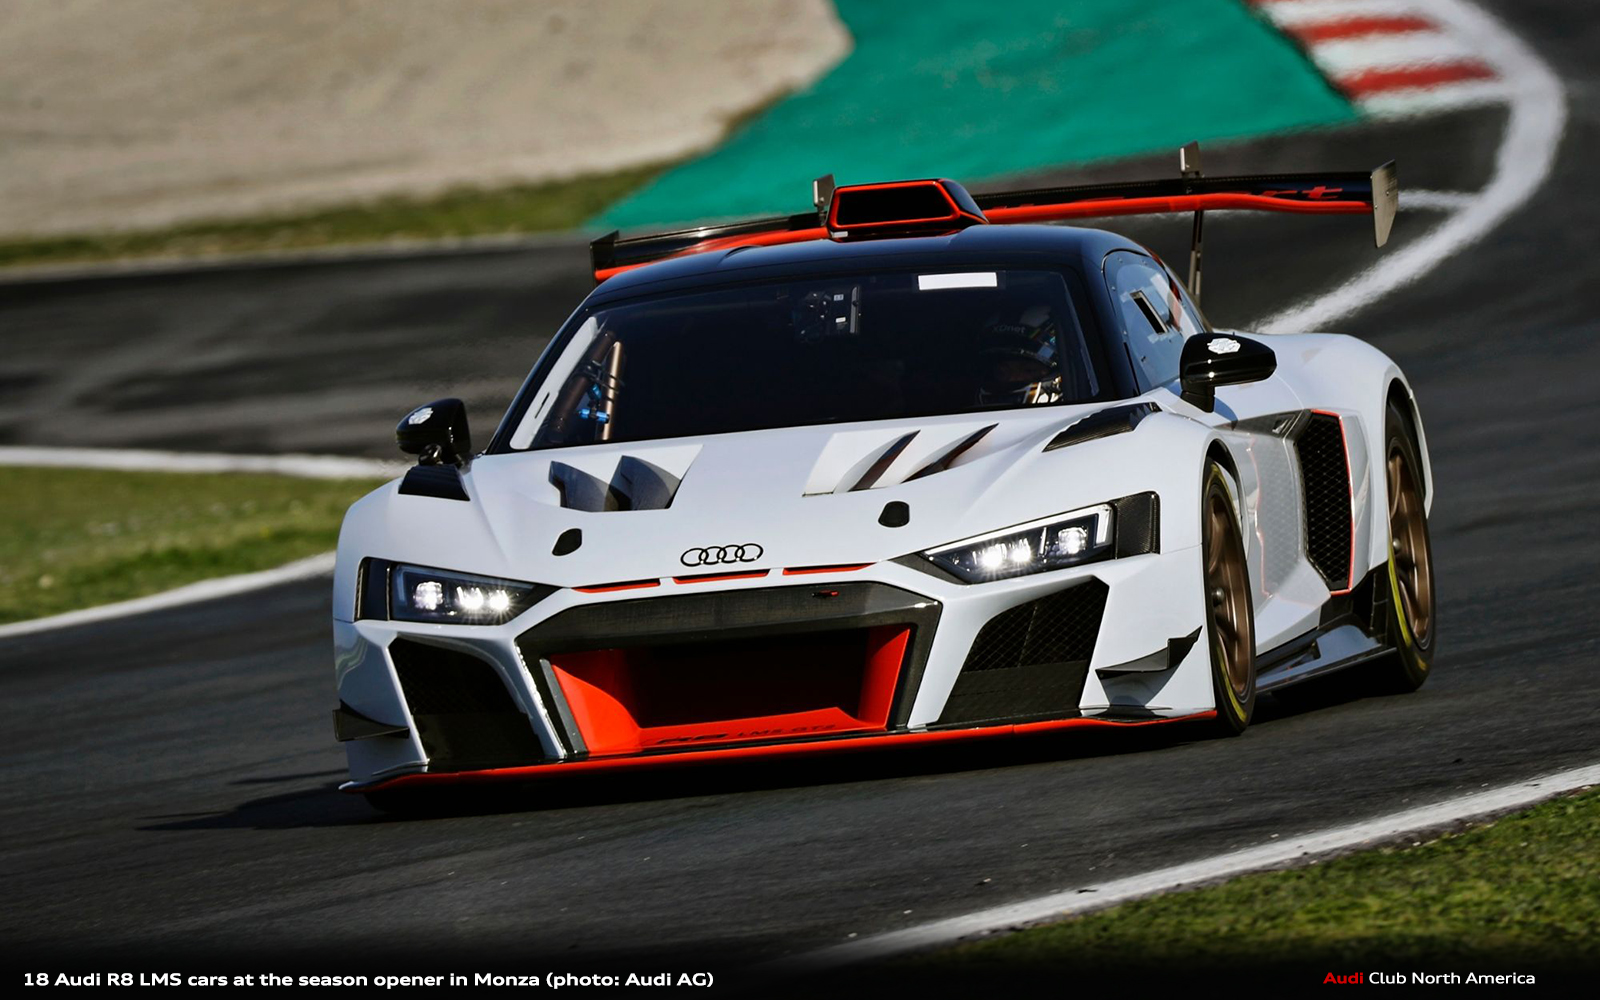 18 Audi R8 LMS Cars at the Season Opener in Monza